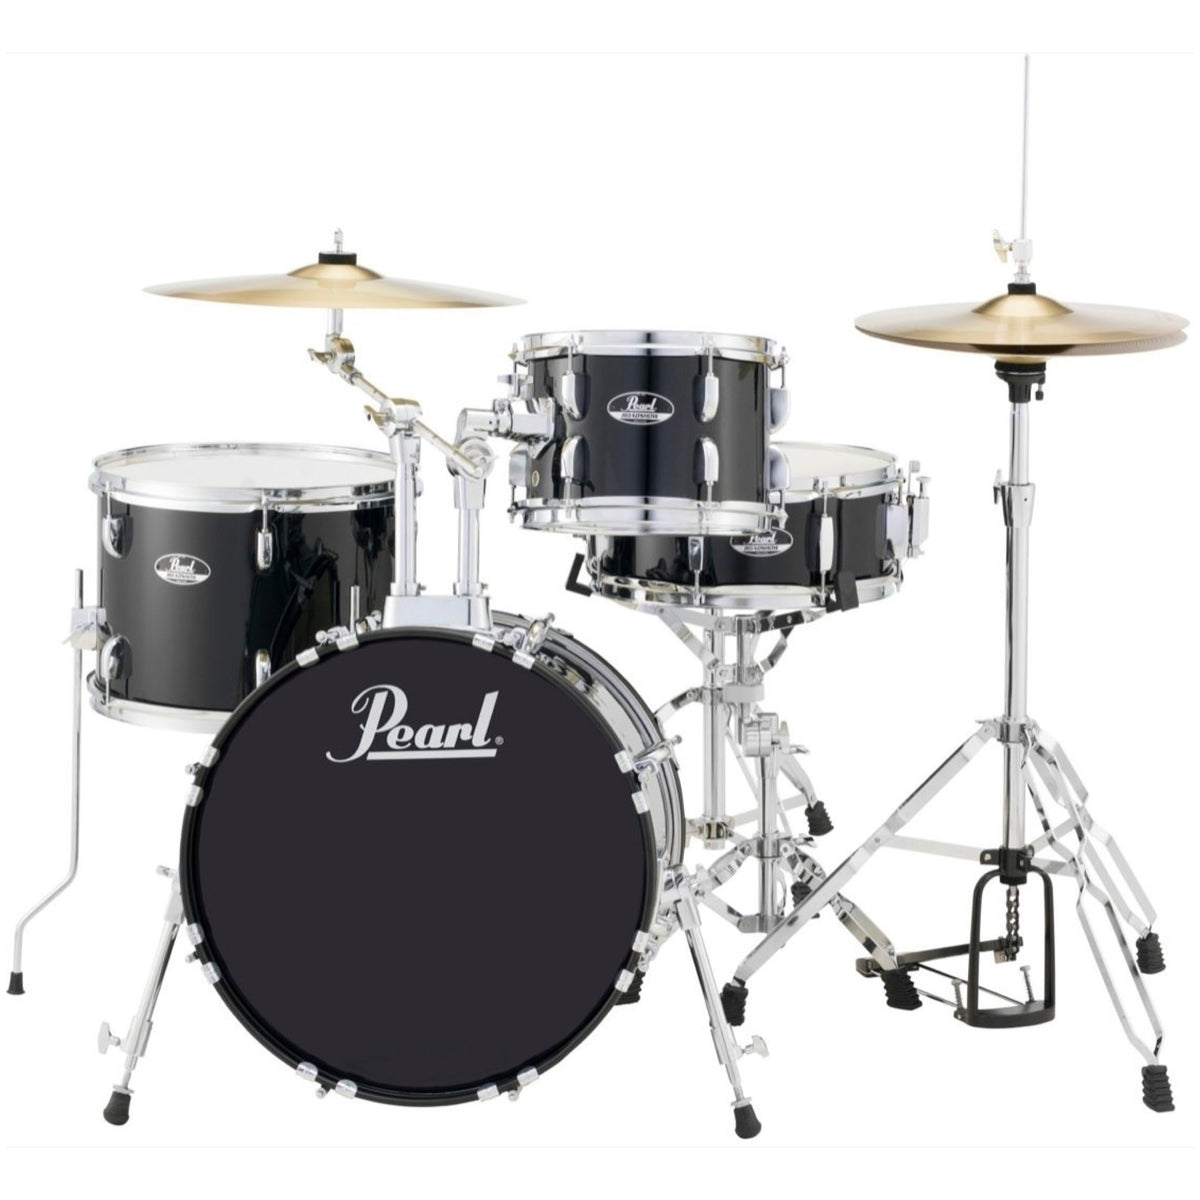 Pearl RS584C Roadshow Complete Bop Drum Kit, 4-Piece, Black